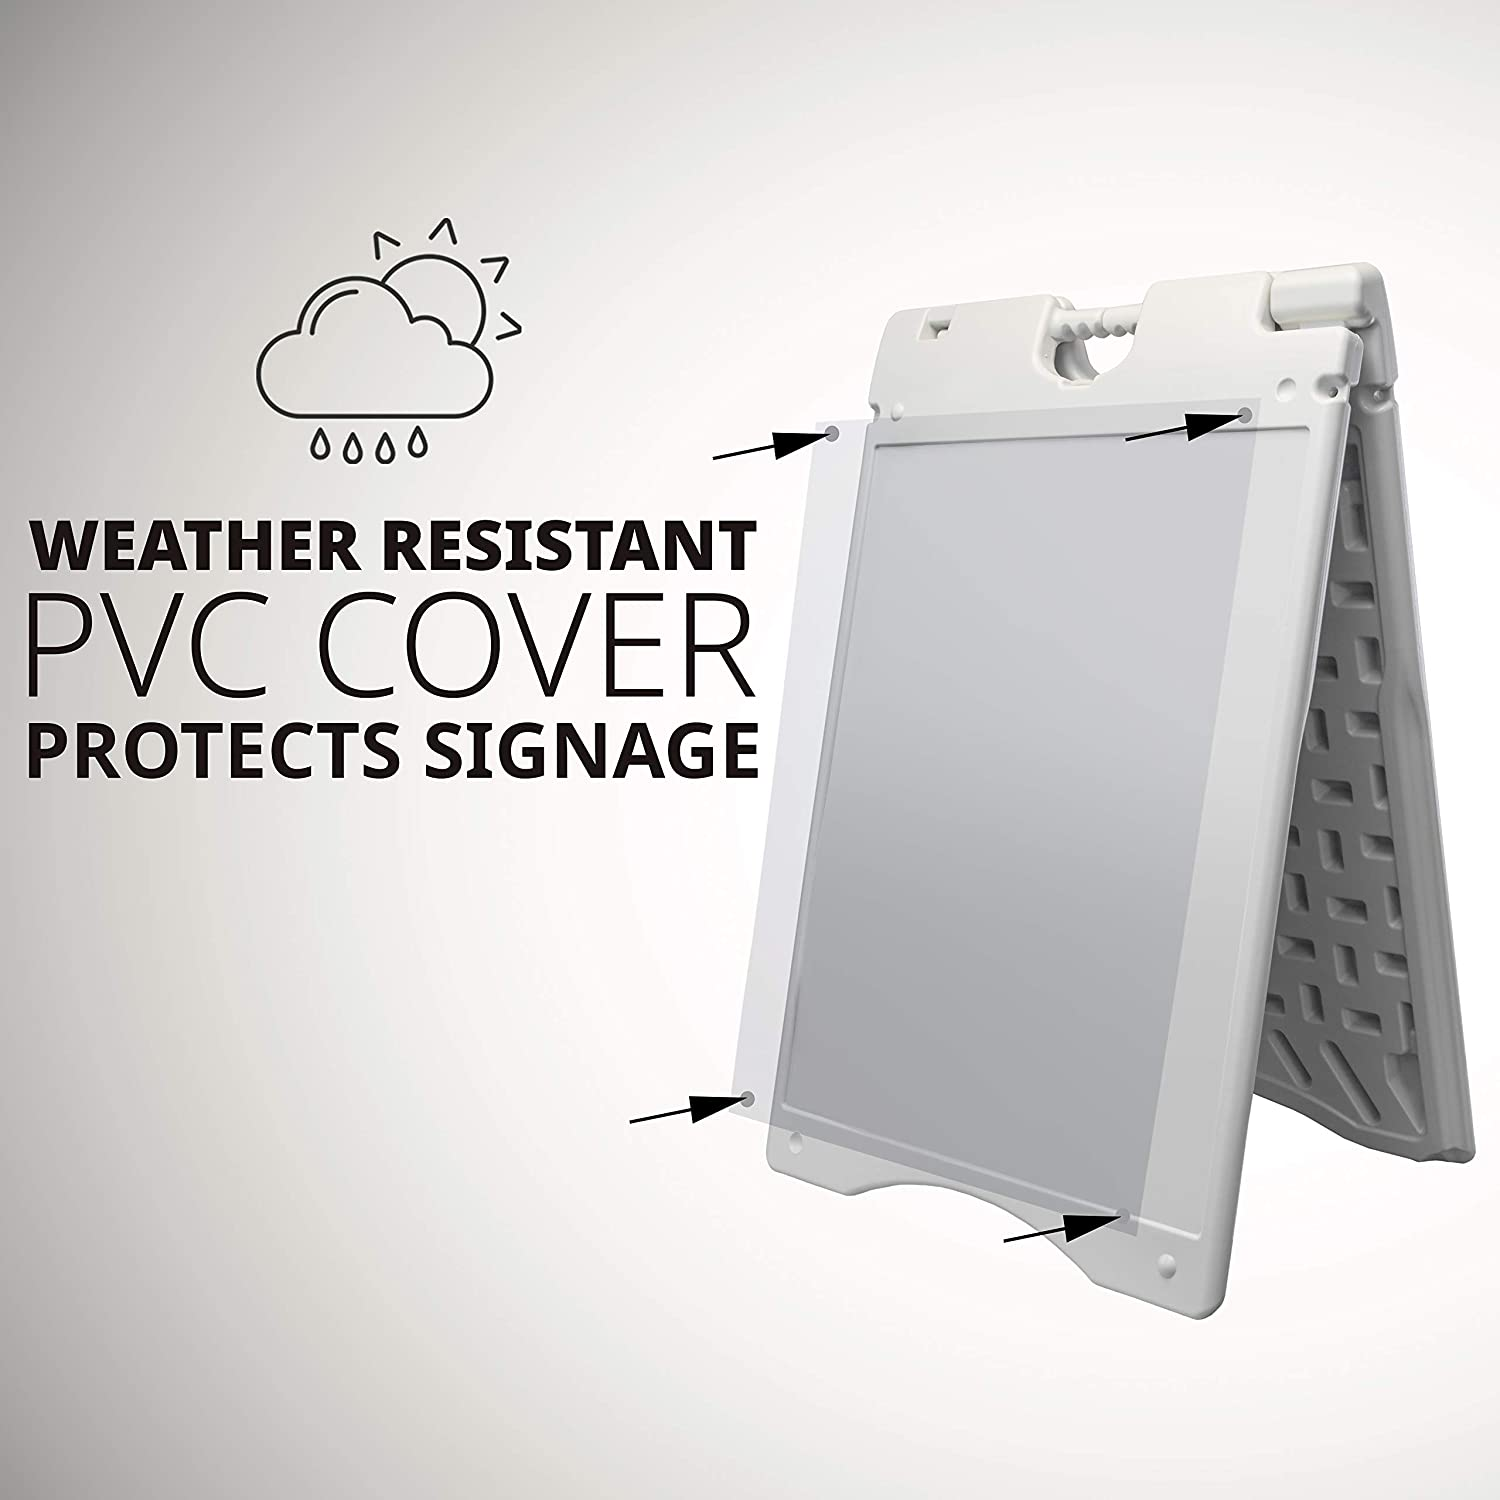 Durable Weatherproof Jumbl A-Frame Signboard Foldable with Nonslip Base for Outdoor Sidewalk Signage Use Front /& Back for Duel Display Surfaces JUMCHH580